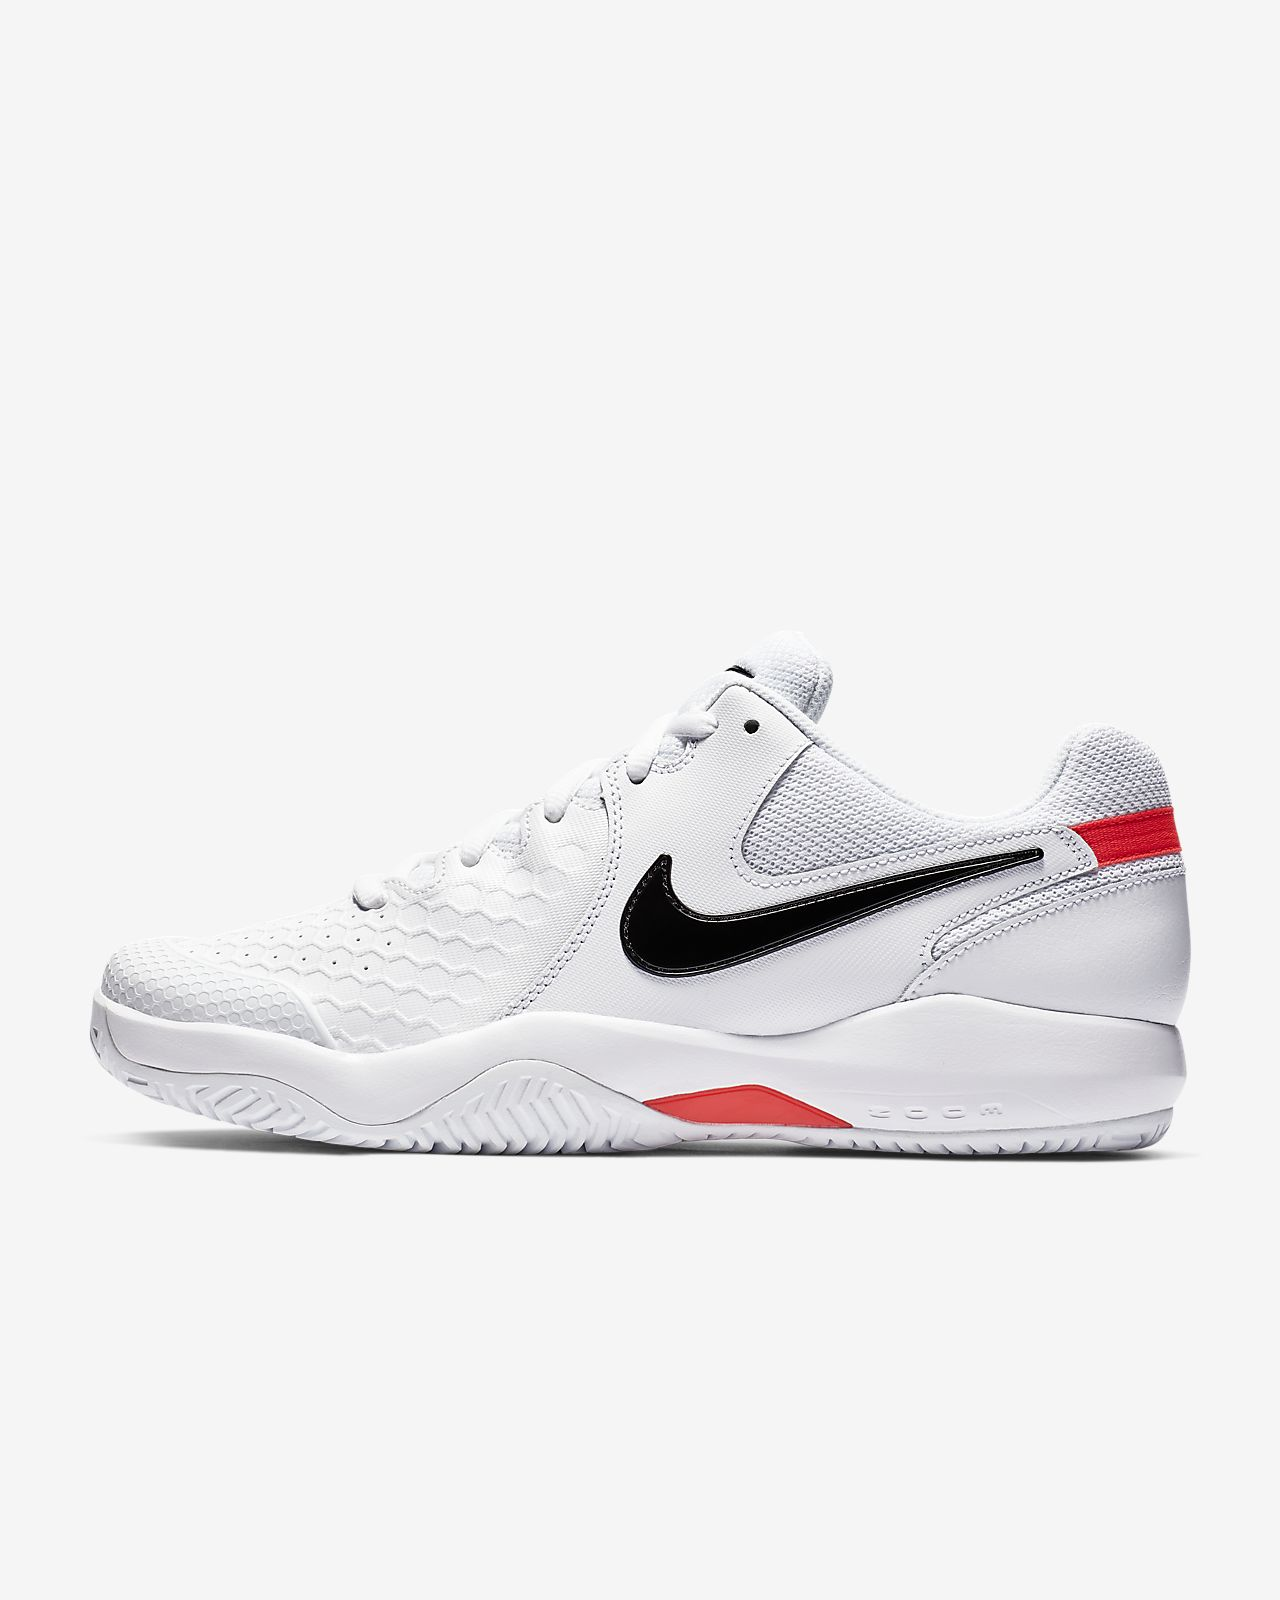 a7bc7d5201a0 NikeCourt Air Zoom Resistance Men s Hard Court Tennis Shoe. Nike.com